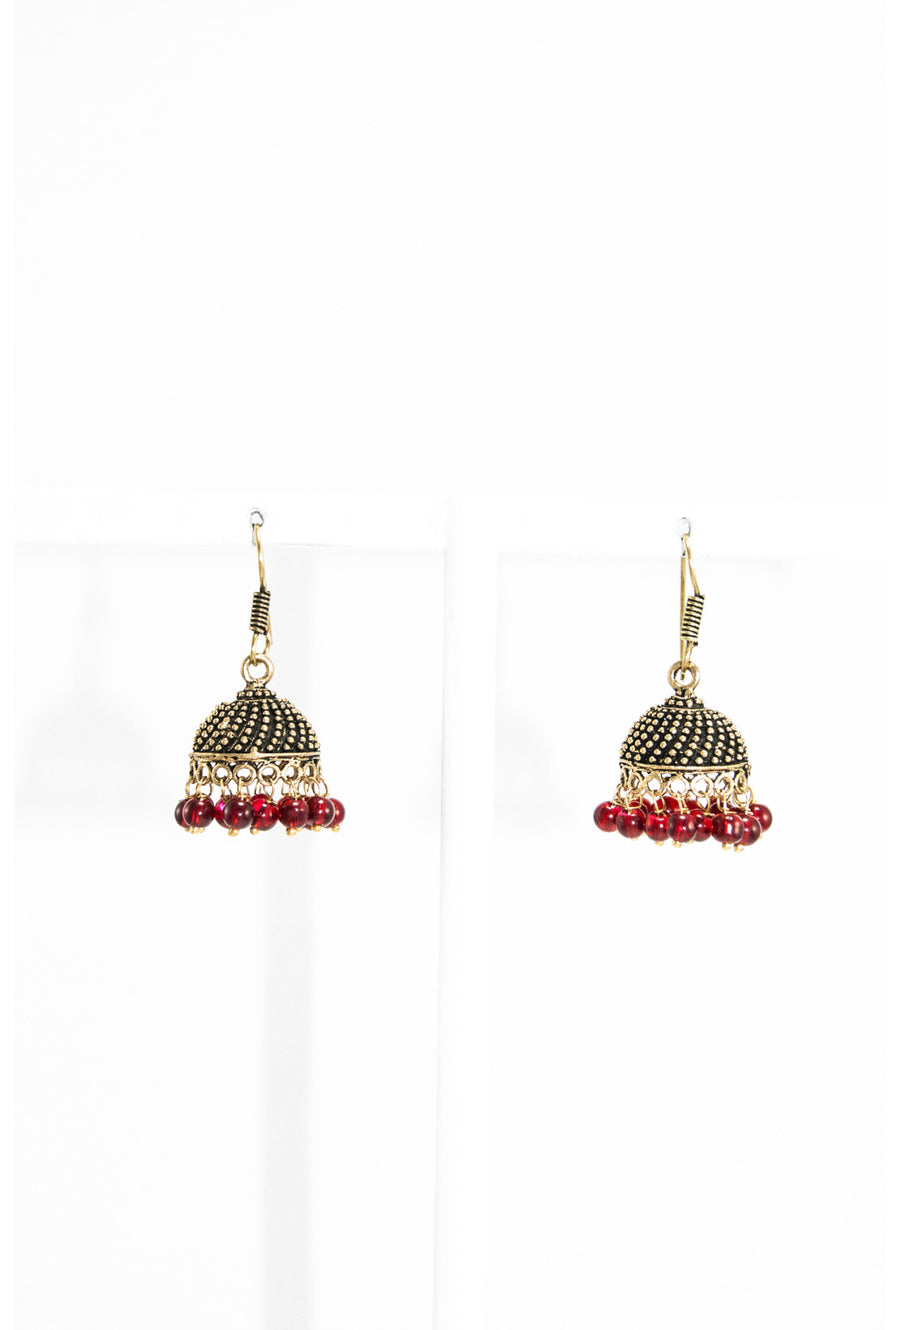 Gold domed earrings with maroon earrings - Desi Royale